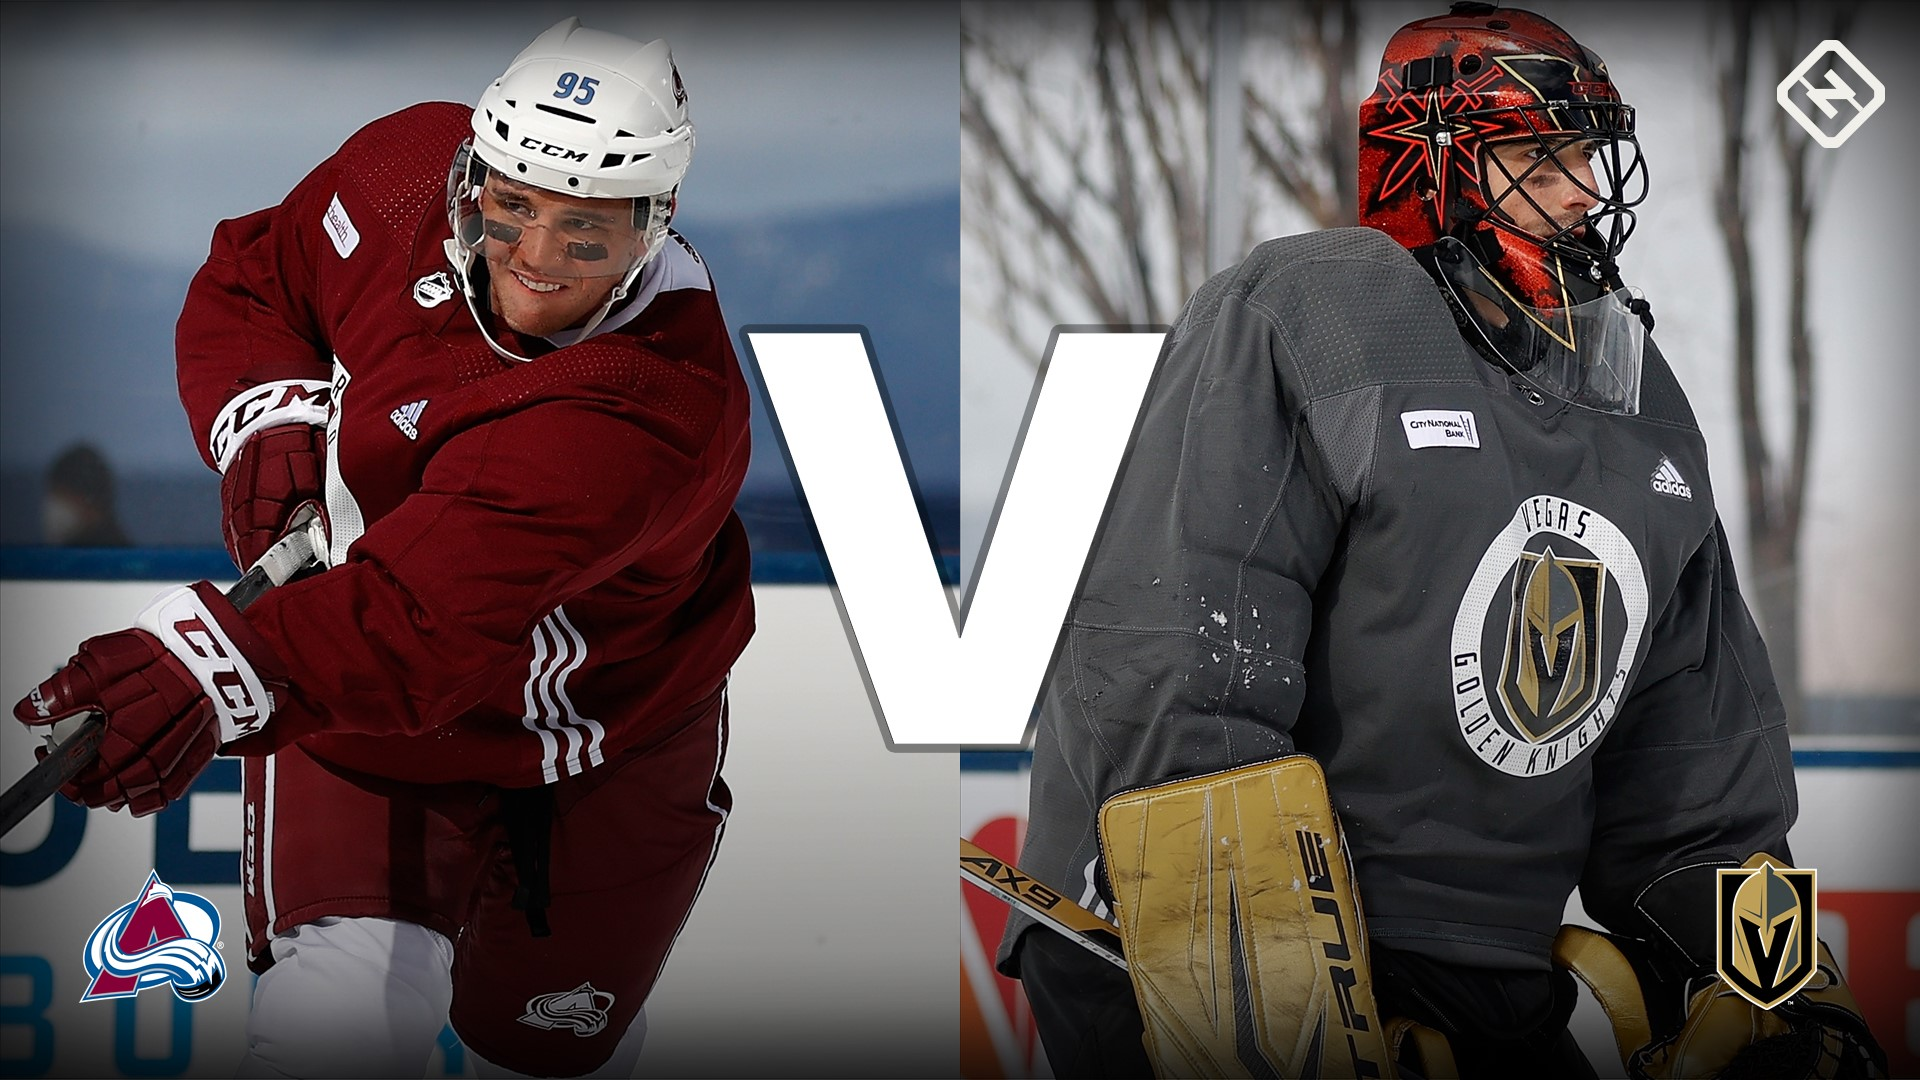 Avalanche vs. Golden Knights: TV channel, time, how to watch NHL Outdoors at Lake Tahoe